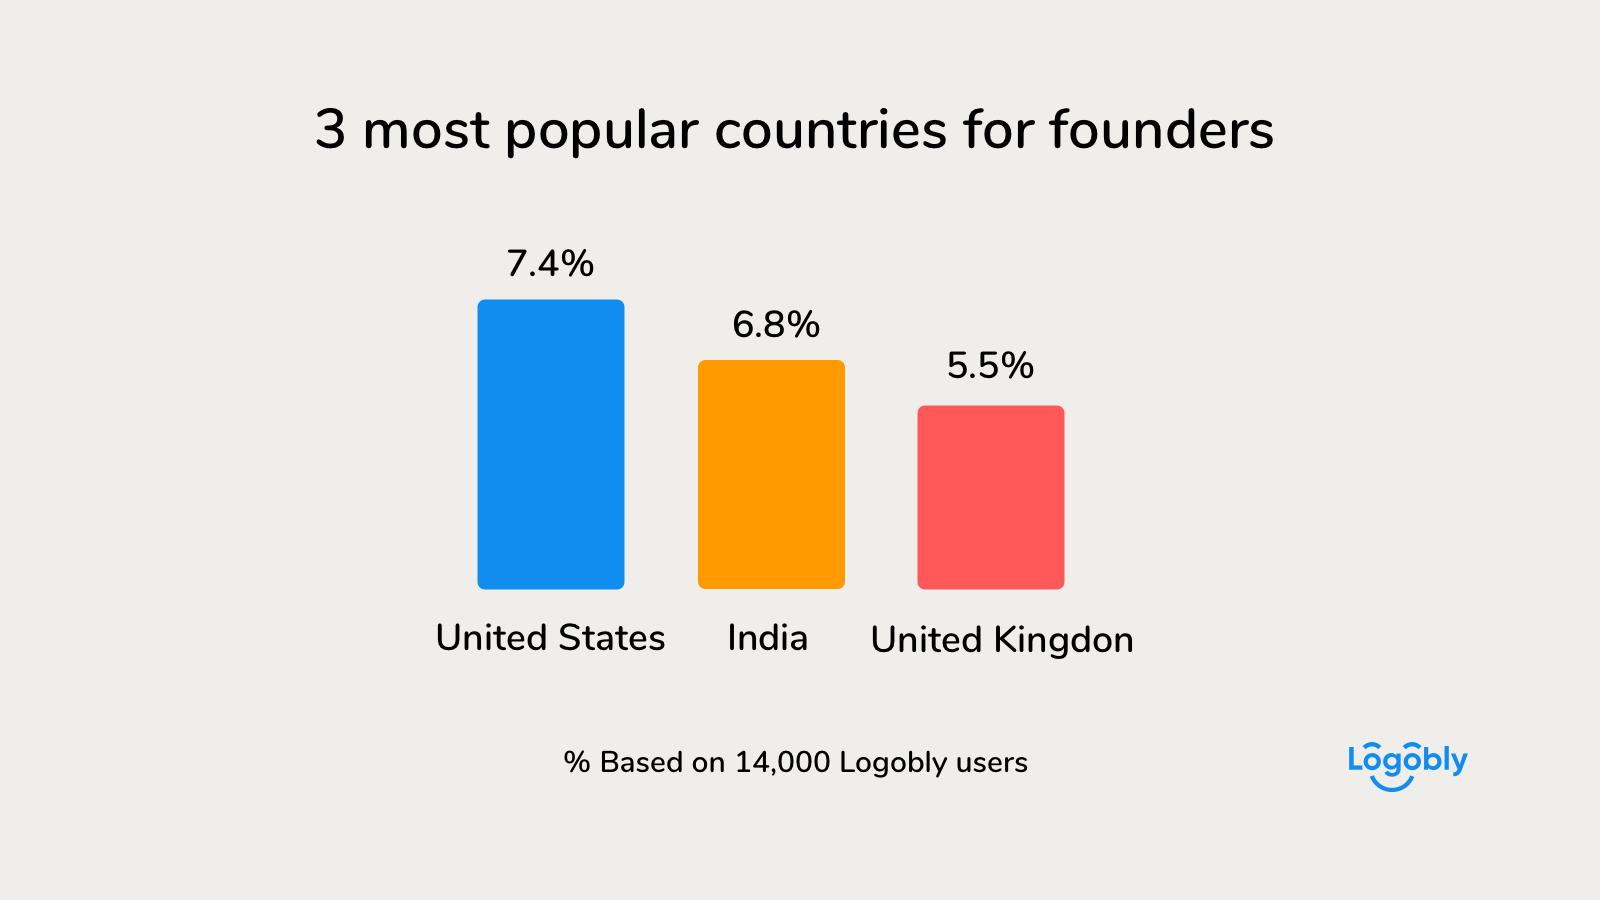 3 most popular countries for founders